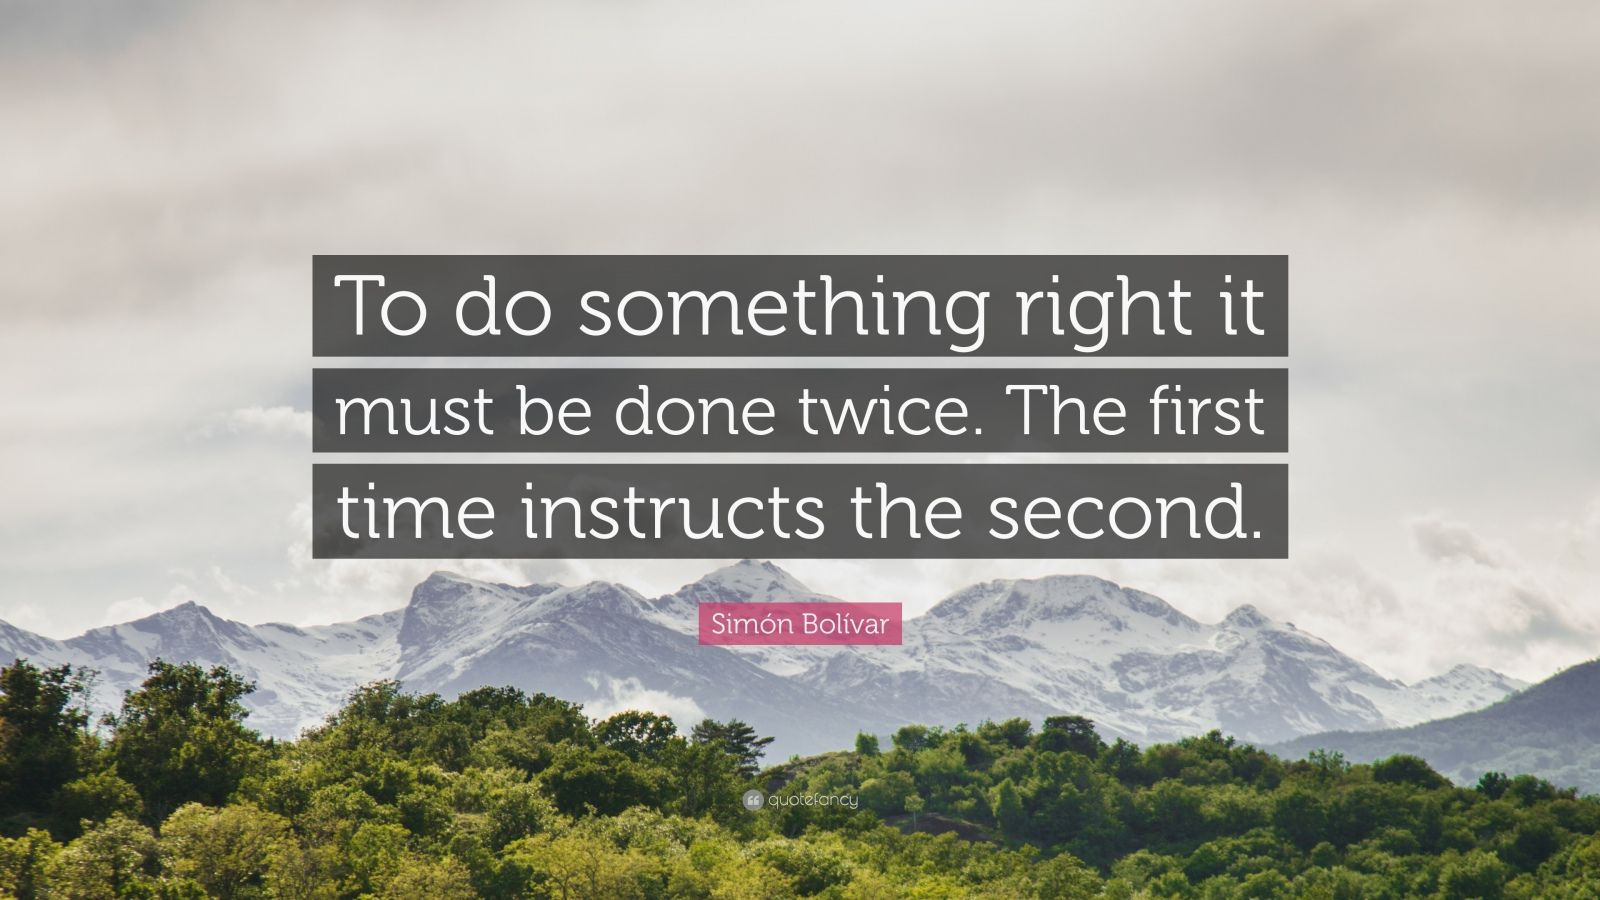 """Simón Bolívar Quote: """"To do something right it must be done twice. The first time instructs the second."""""""